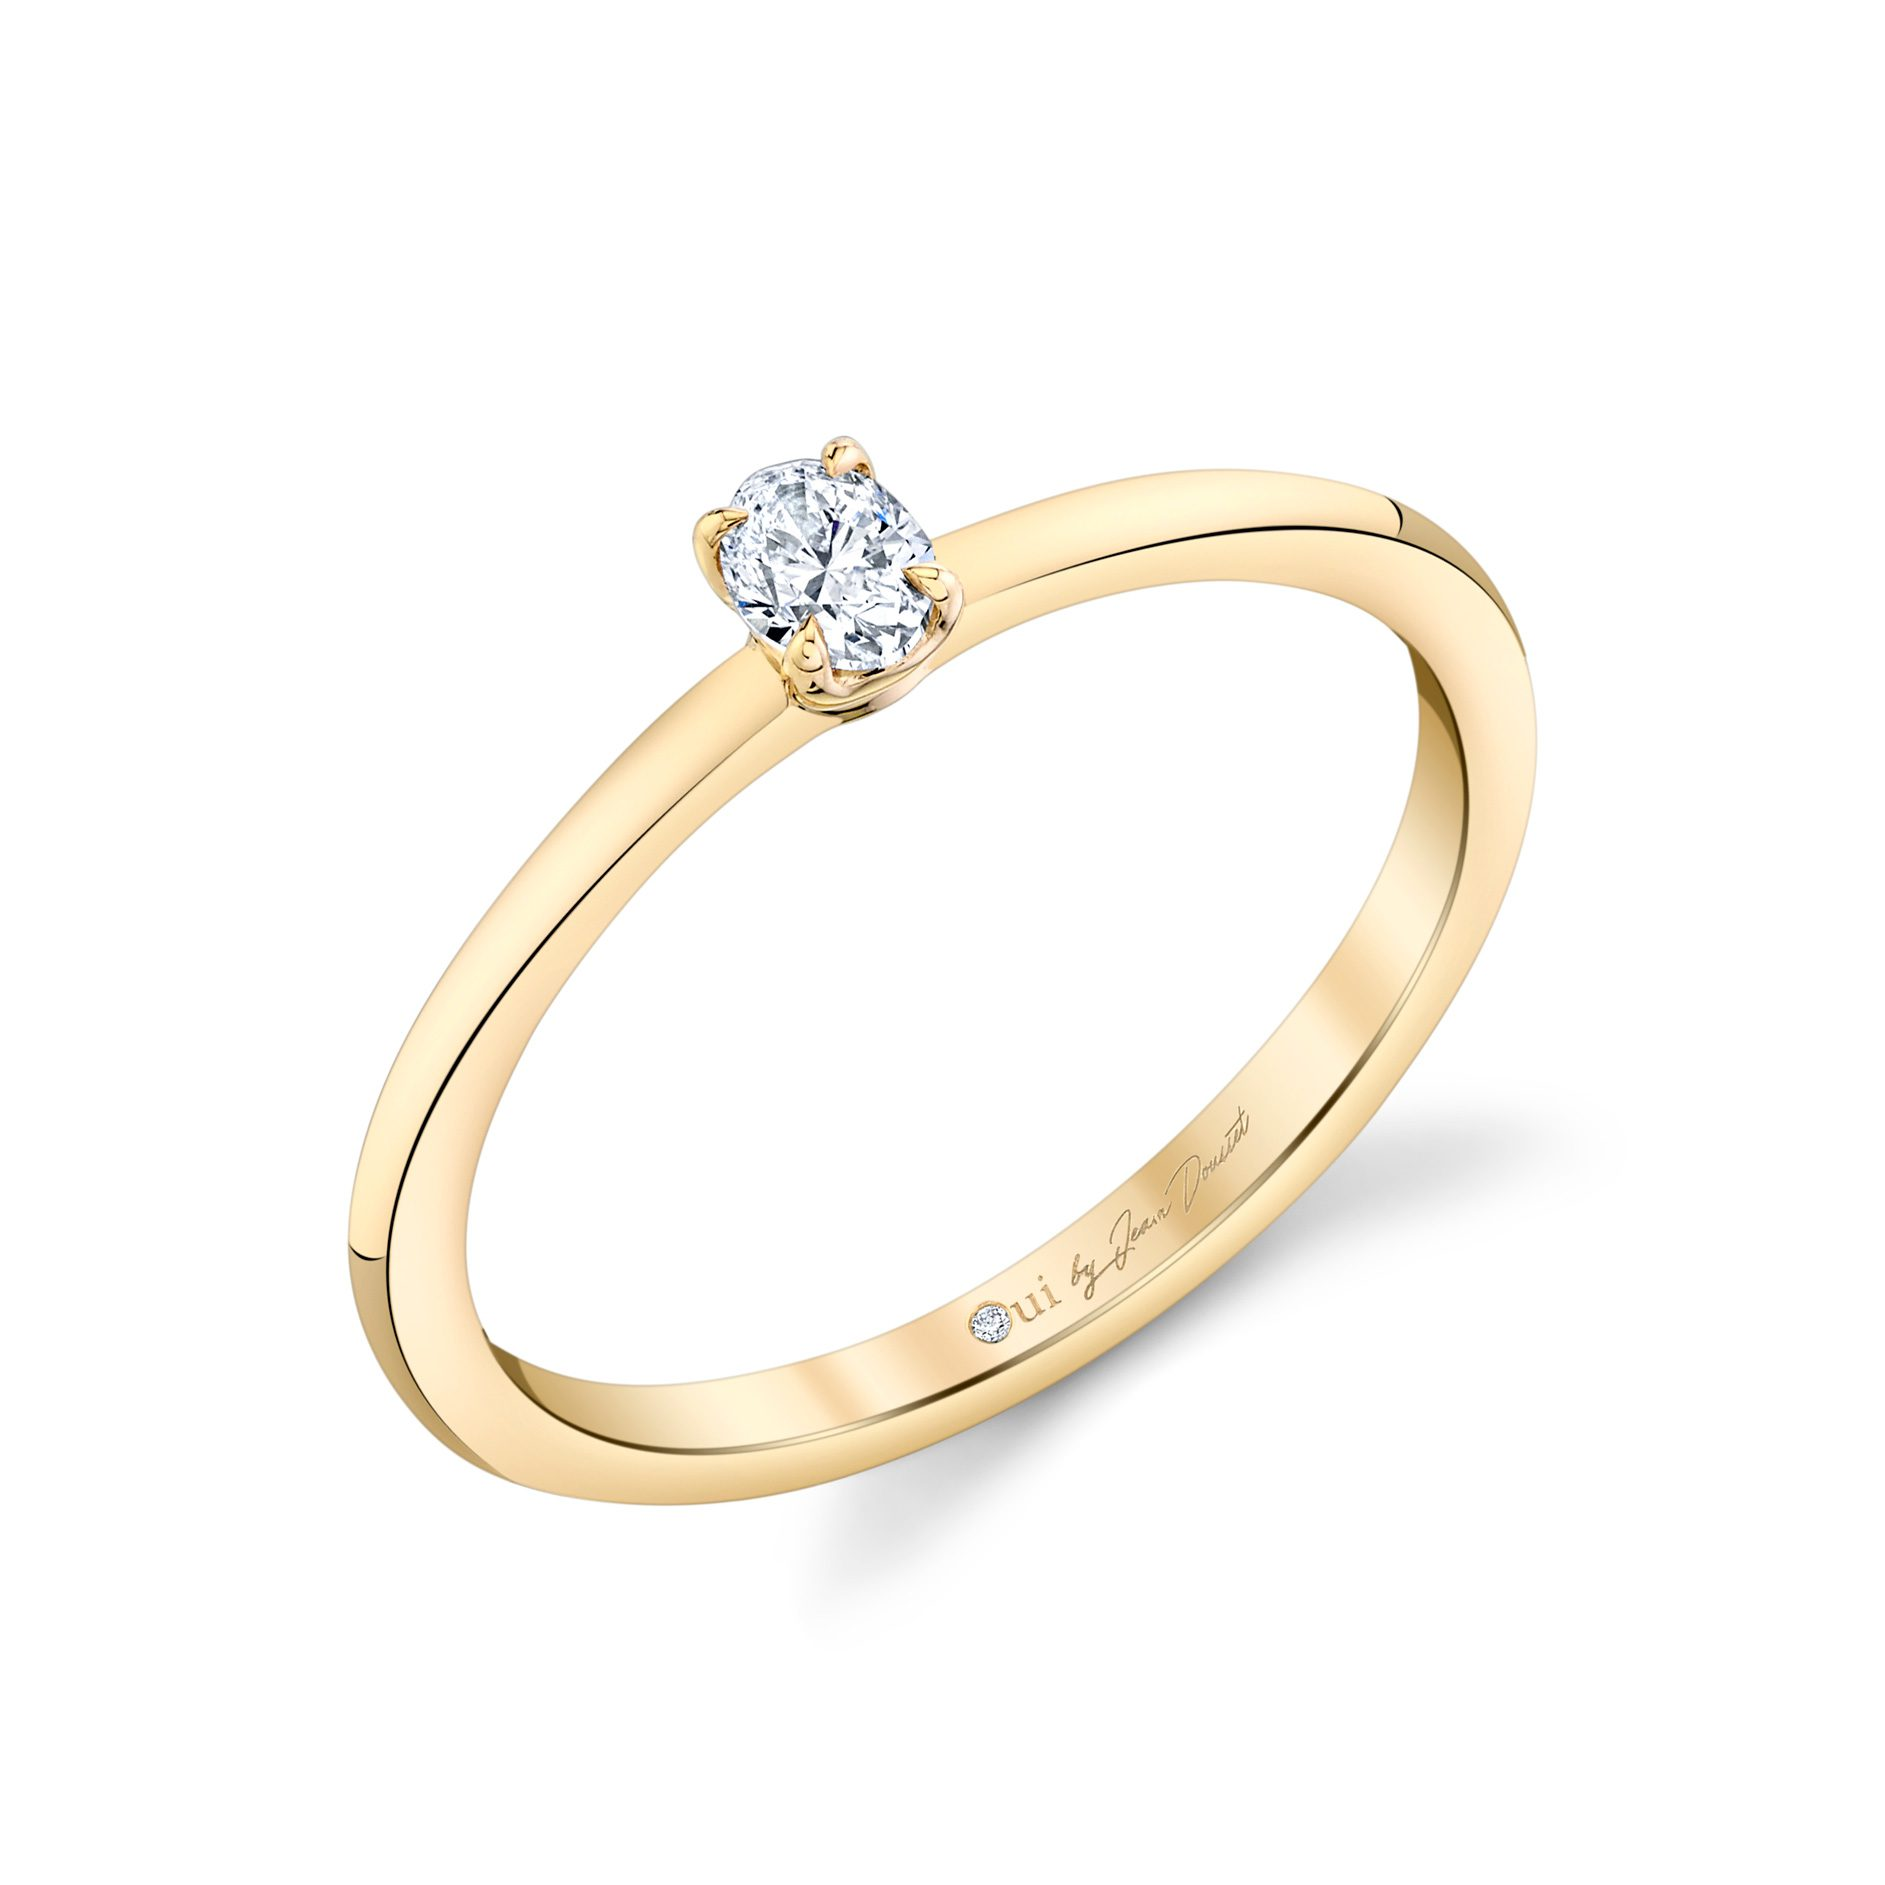 La Petite Oval Diamond Wedding Band in 18k Yellow Gold Standing View by Oui by Jean Dousset